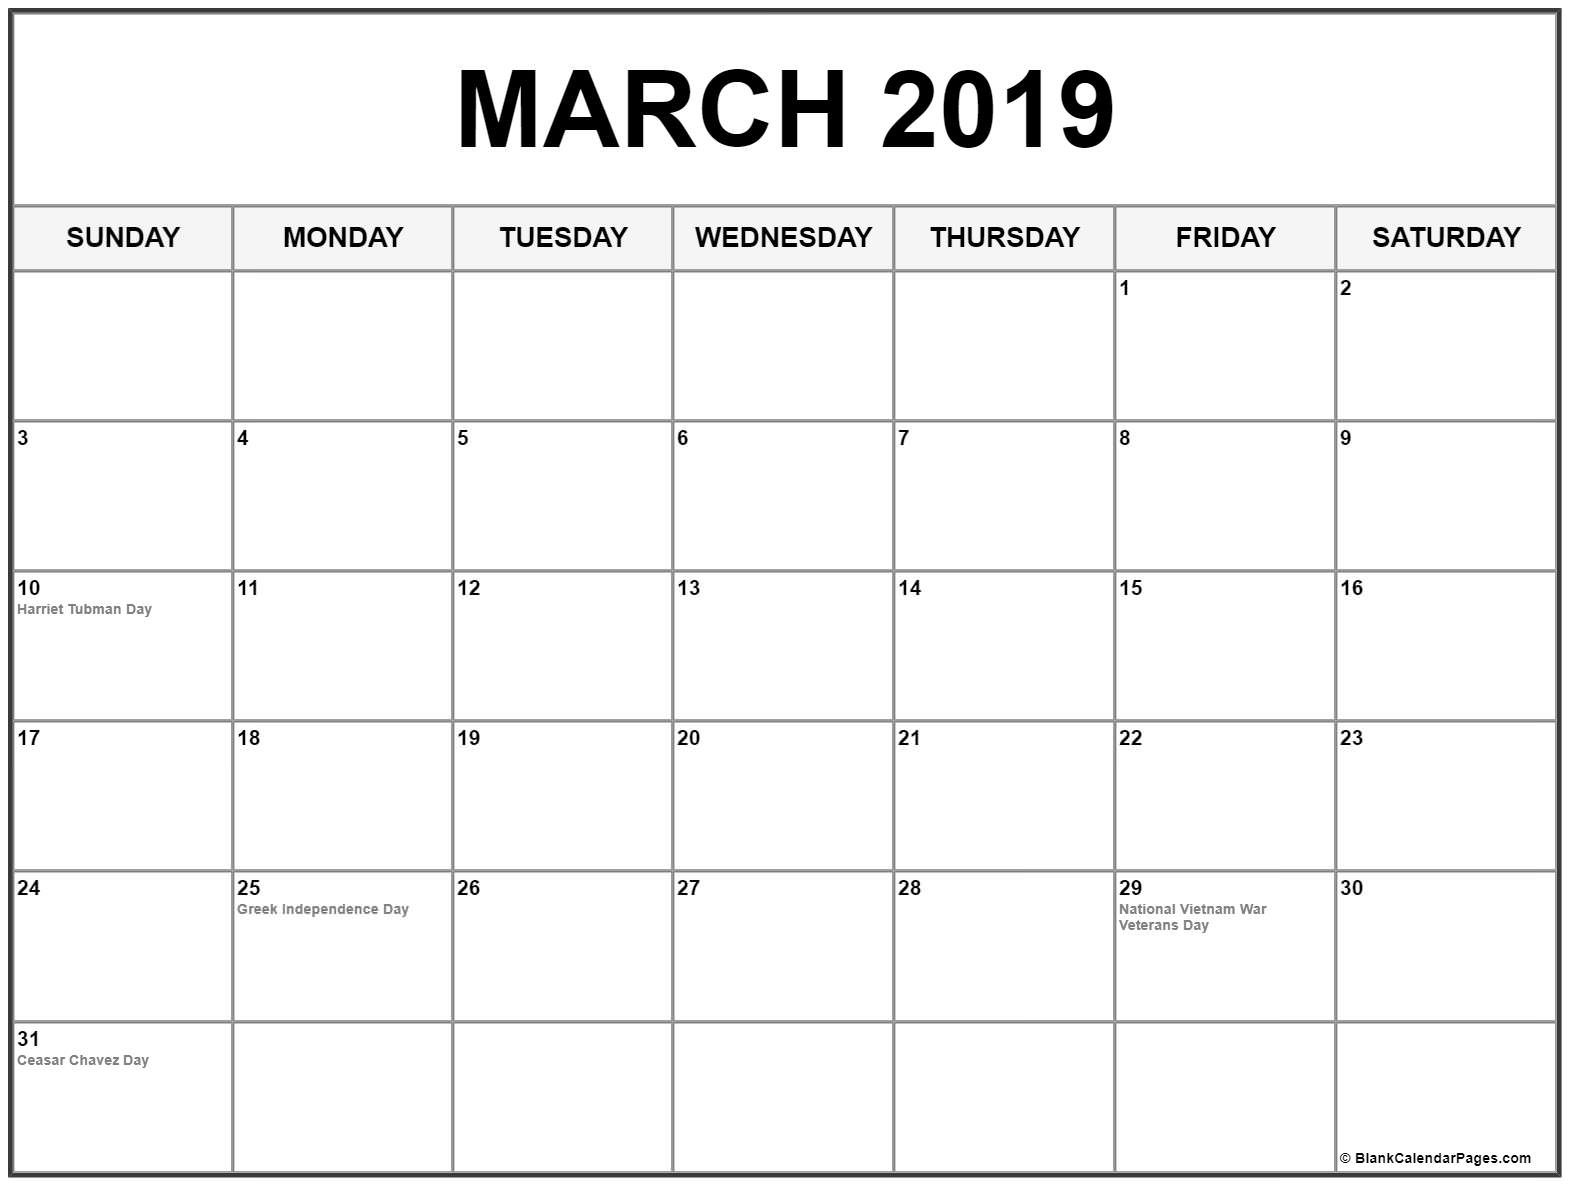 March 2019 Calendar With USA Holidays